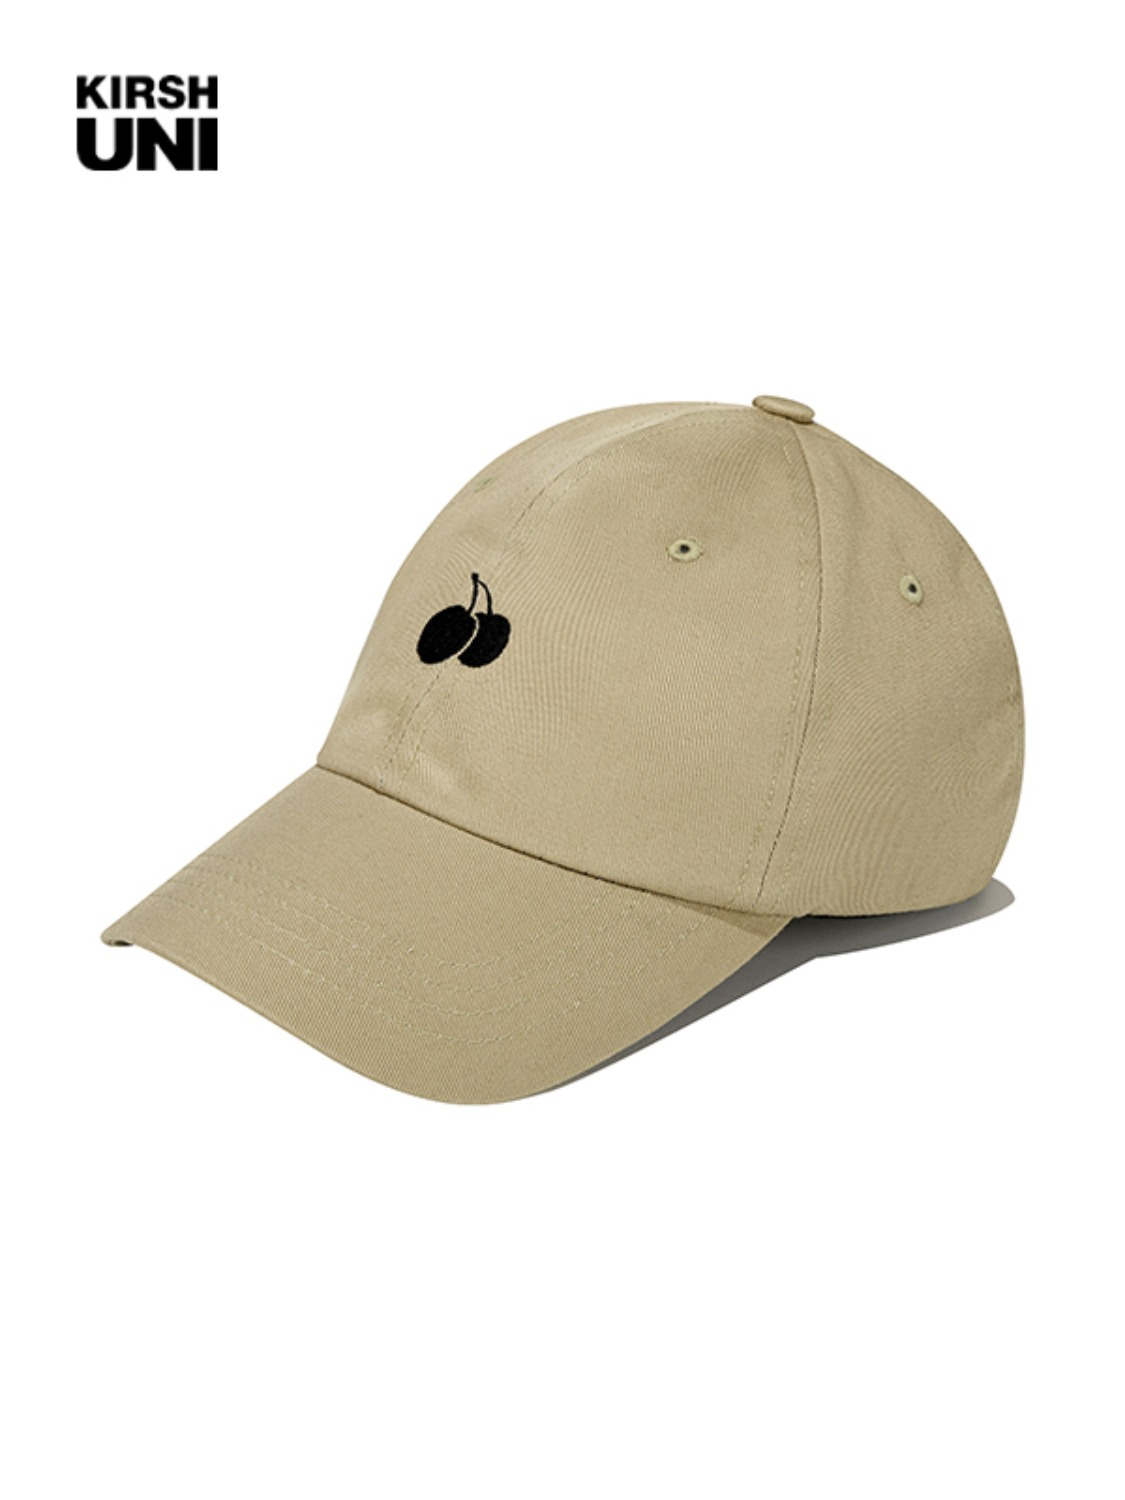 (2월 5일 예약발송)UNI SMALL CHERRY LOGO BALLCAP KS [BEIGE]